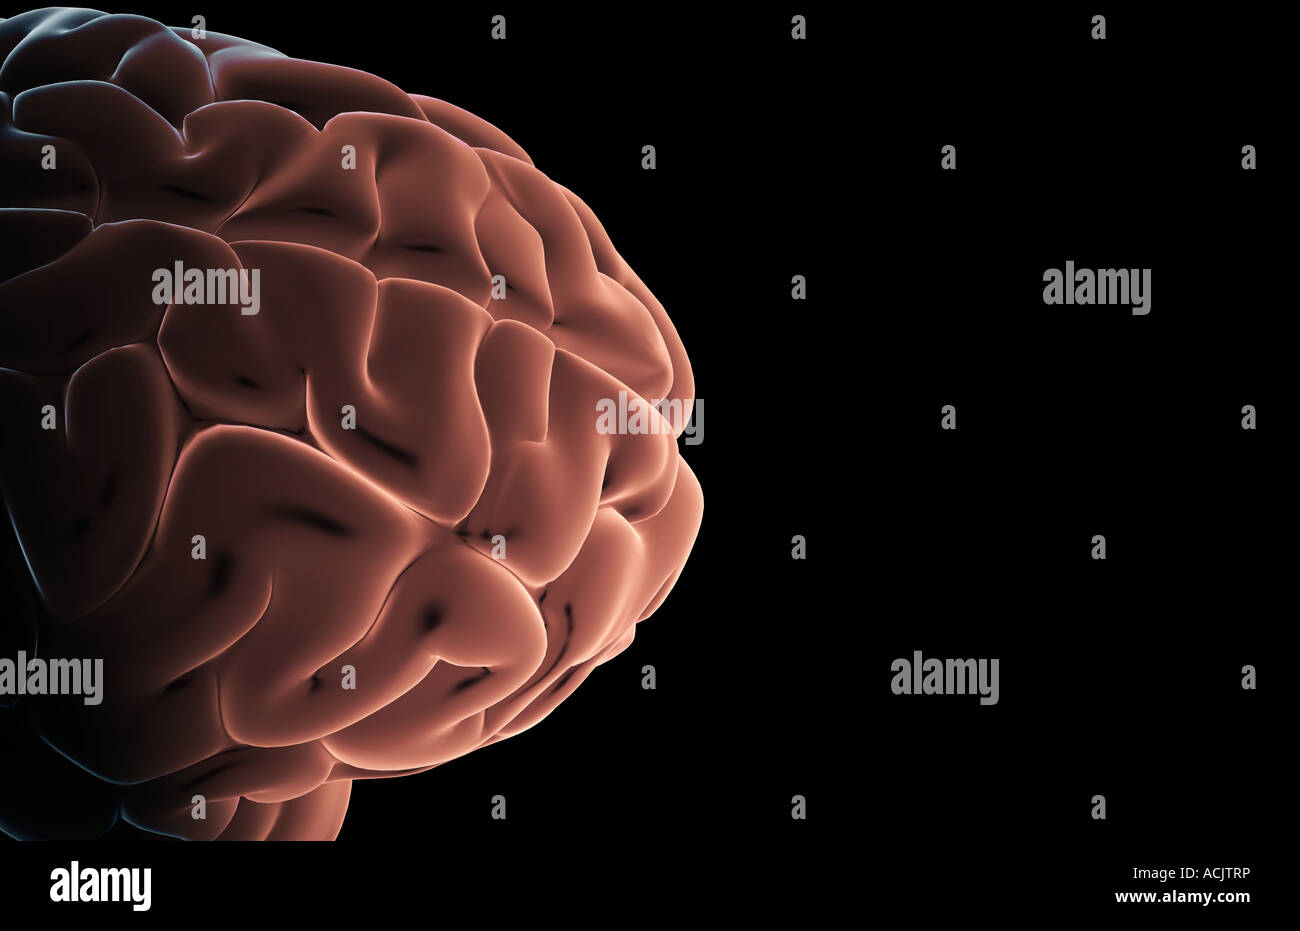 Frontal Lobe Stockfotos & Frontal Lobe Bilder - Alamy